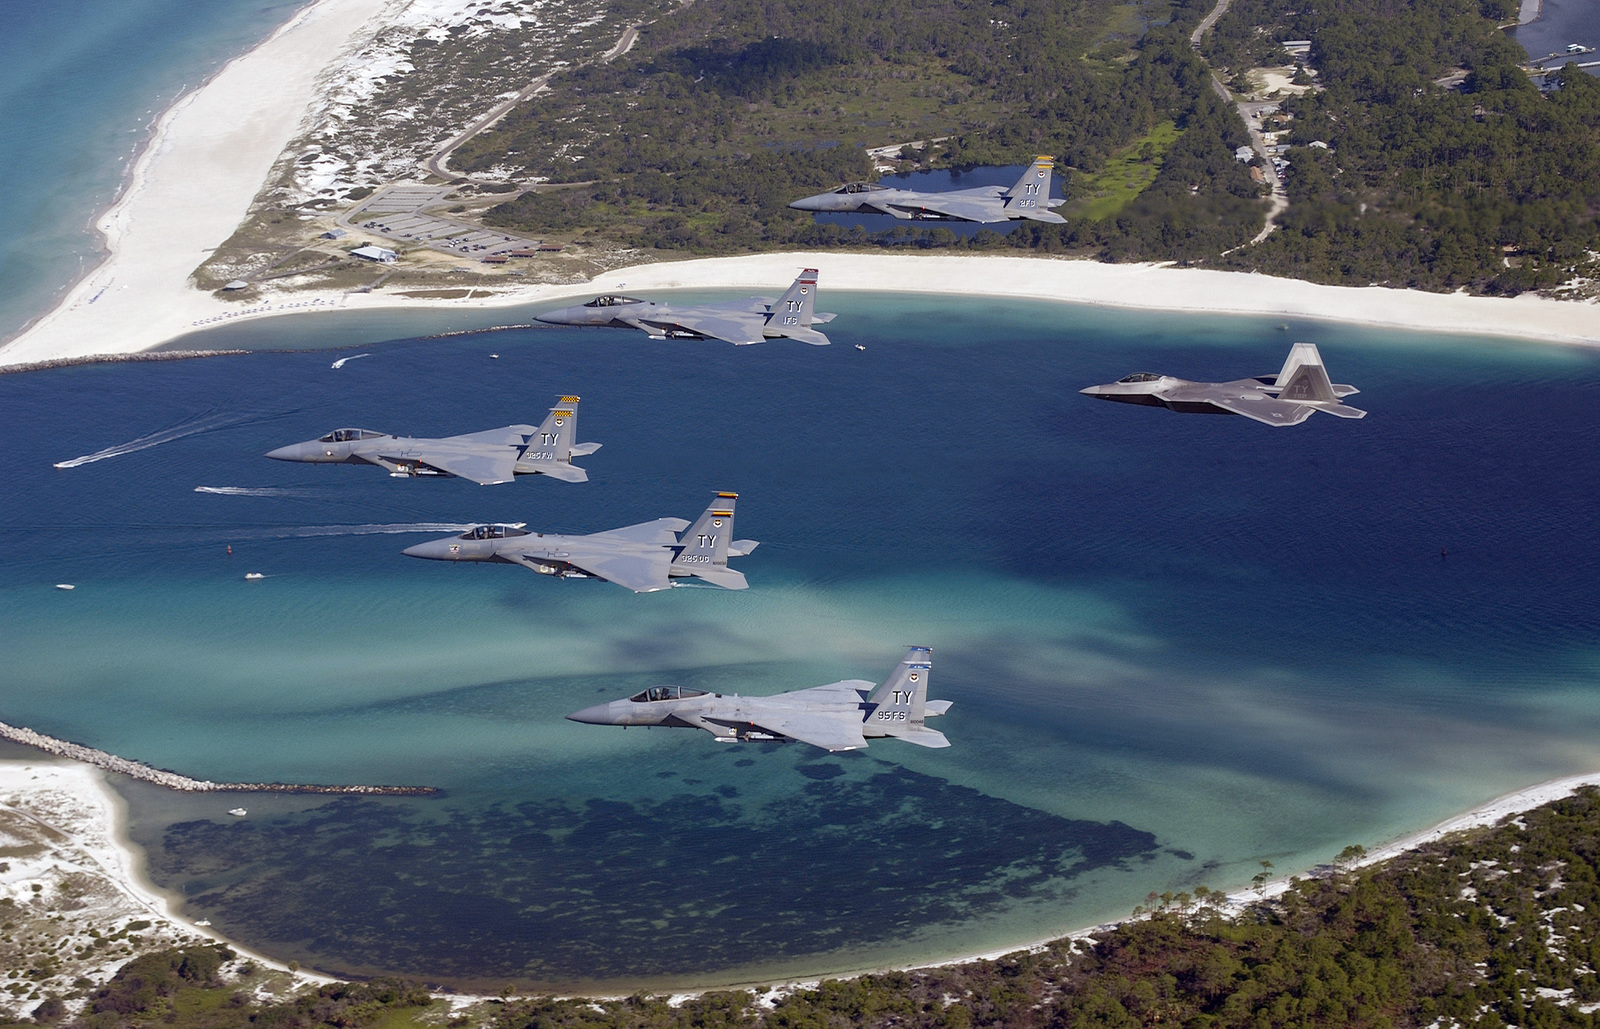 US Air Force (USAF) Brigadier General (BGEN) Larry New, Commander of the 325th Fighter Wing (FW), Air Education and Training Command (AETC) located at Tyndall Air Force Base (AFB), Florida (FL), leads a formation of four F-15C Eagle fighters from the 1ST, 2nd, and 95th Fighter Squadron's (FS) and one F/A-22 Raptor (right) from the 43rd FS, each flown by their respective Squadron Commander